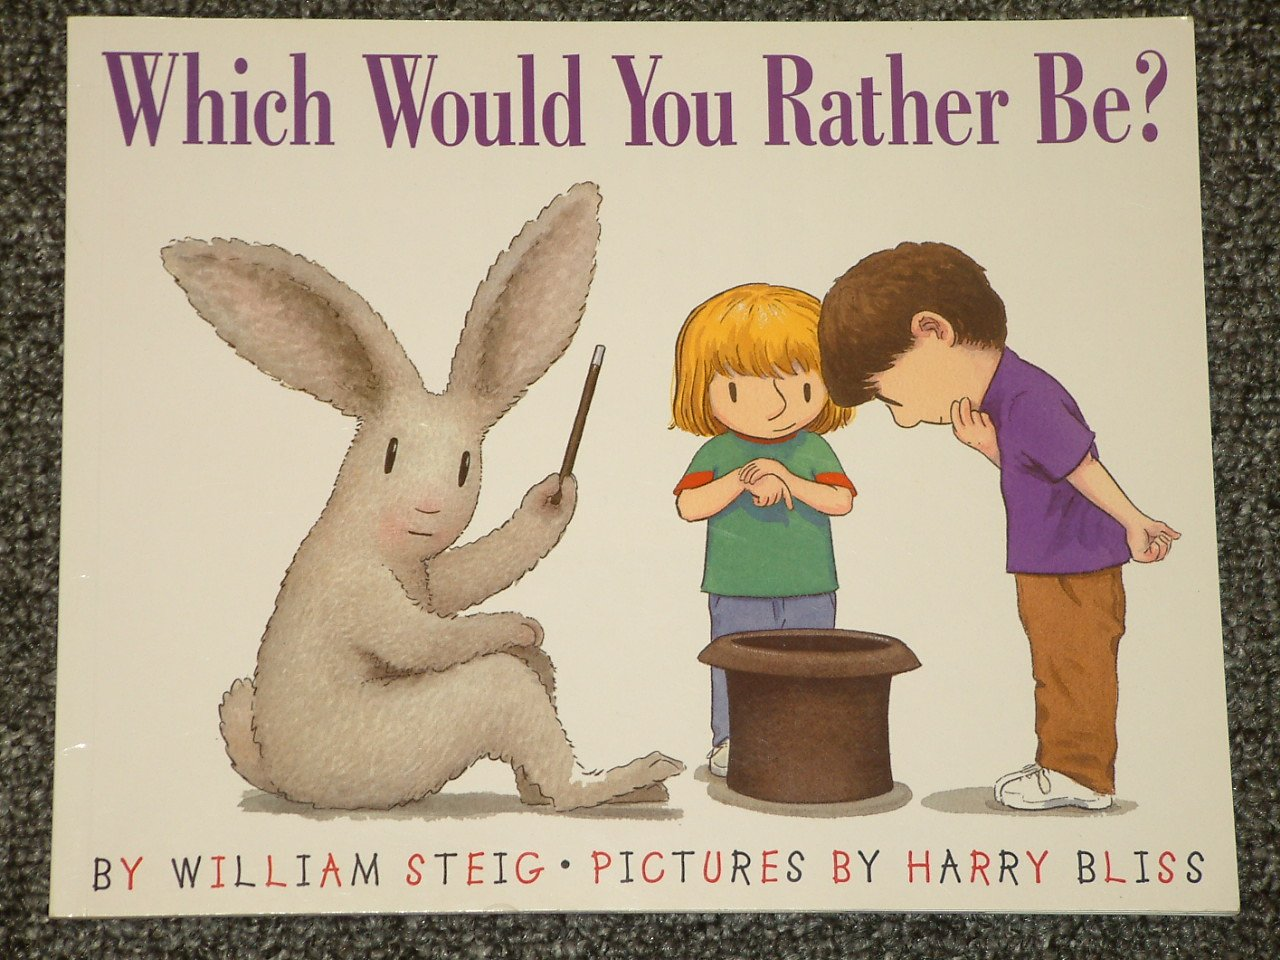 Which Would You Rather Be? by William Steig and Harry Bliss